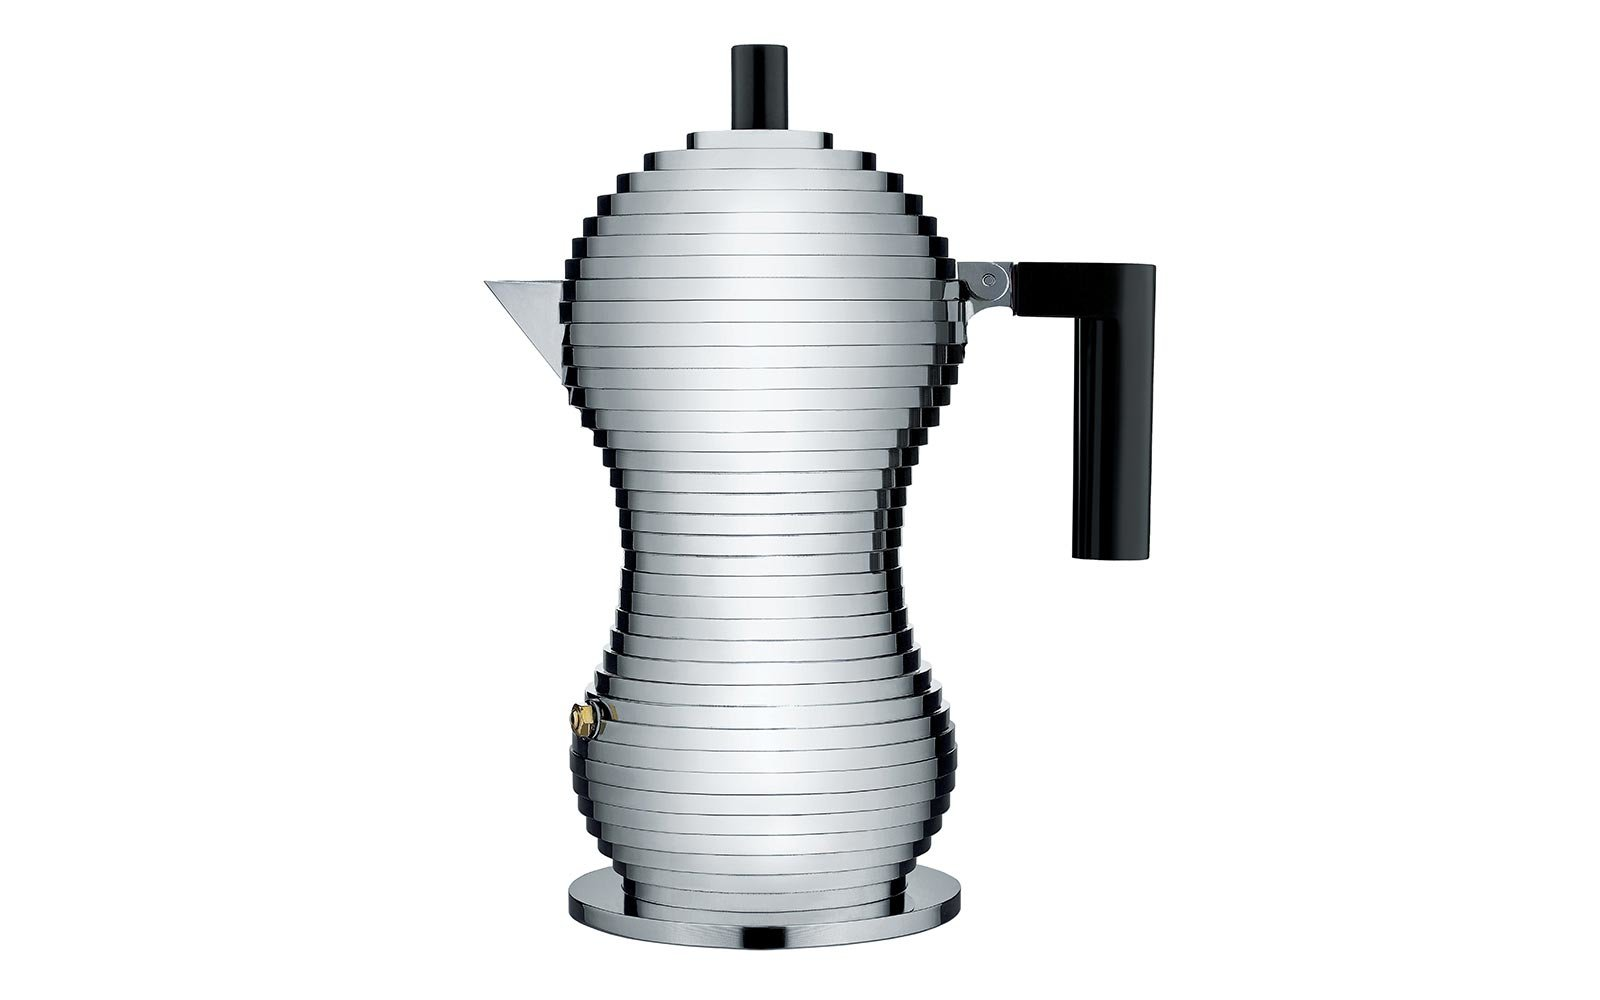 Best Coffee Maker Under Usd 80 : The best home decor from museum gift shops Travel + Leisure